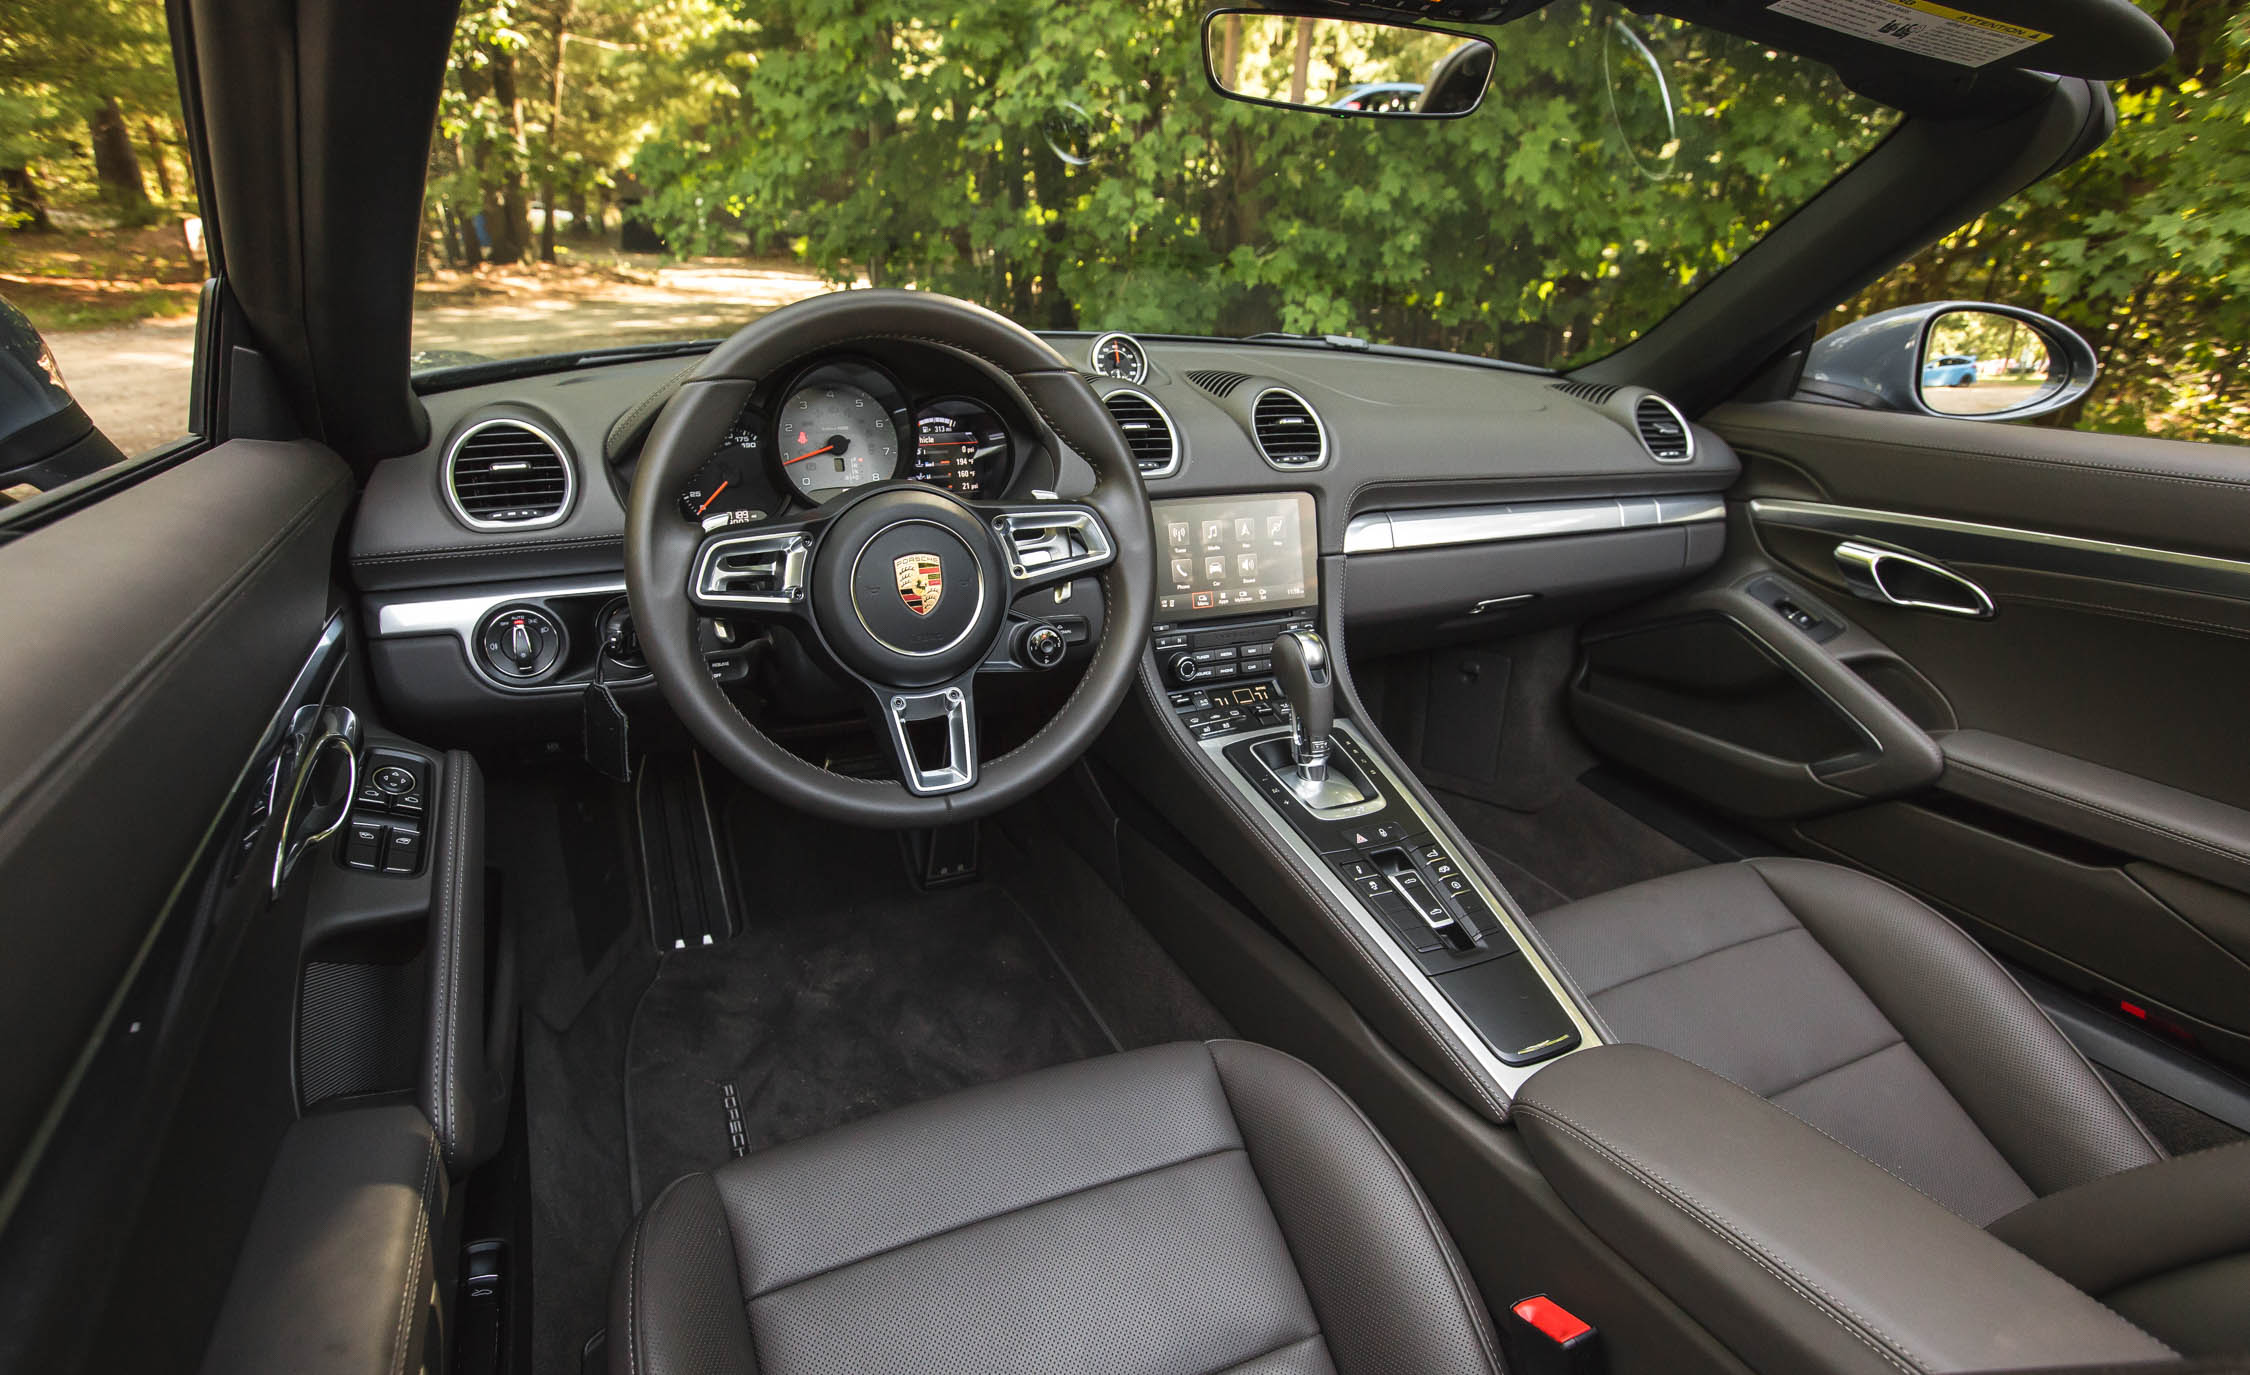 2017 Porsche 718 Boxster S Interior Cockpit And Dash (View 31 of 71)